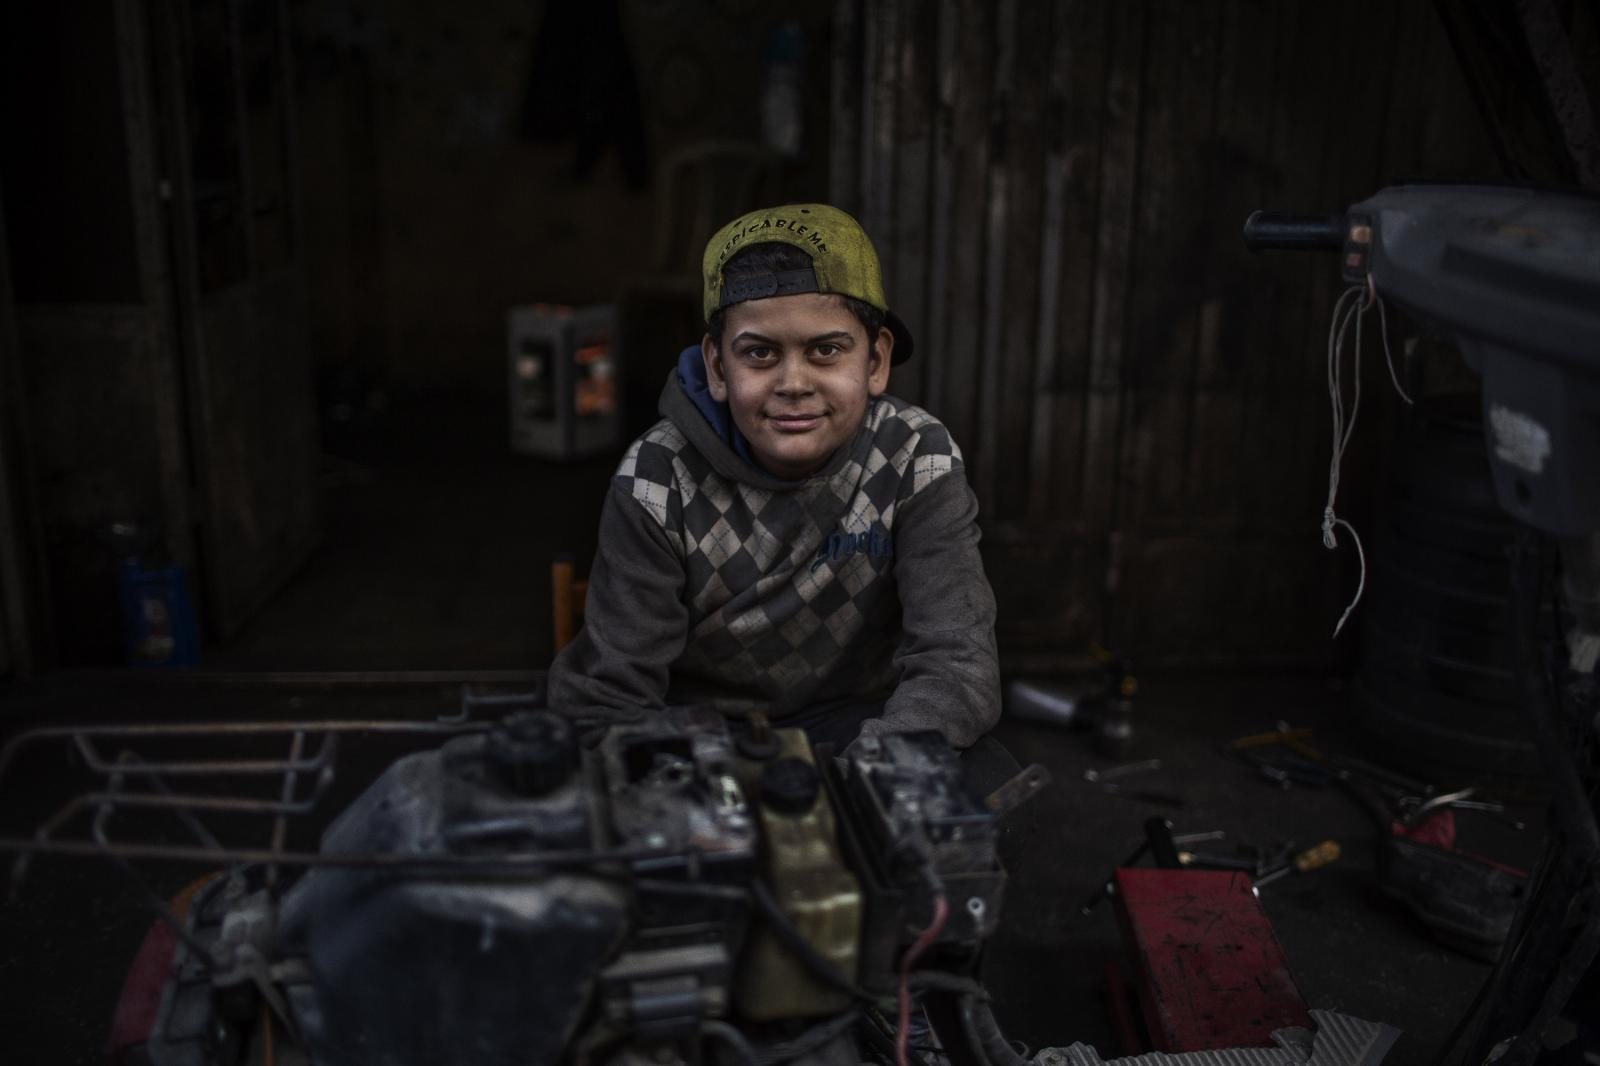 """Abdel Hayy Ayoubi, 15 years old. """"I'd like to go to school but I'd also not like to go to school."""" He worked with car mechanics before becoming a motorcycle fixer. His father is a garbage collector. Abdel Hayy went to school for just two years. Part of growing illiteracy. Tripoli. Lebanon. December 11th, 2019. Diego Ibarra Sánchez for CNN"""